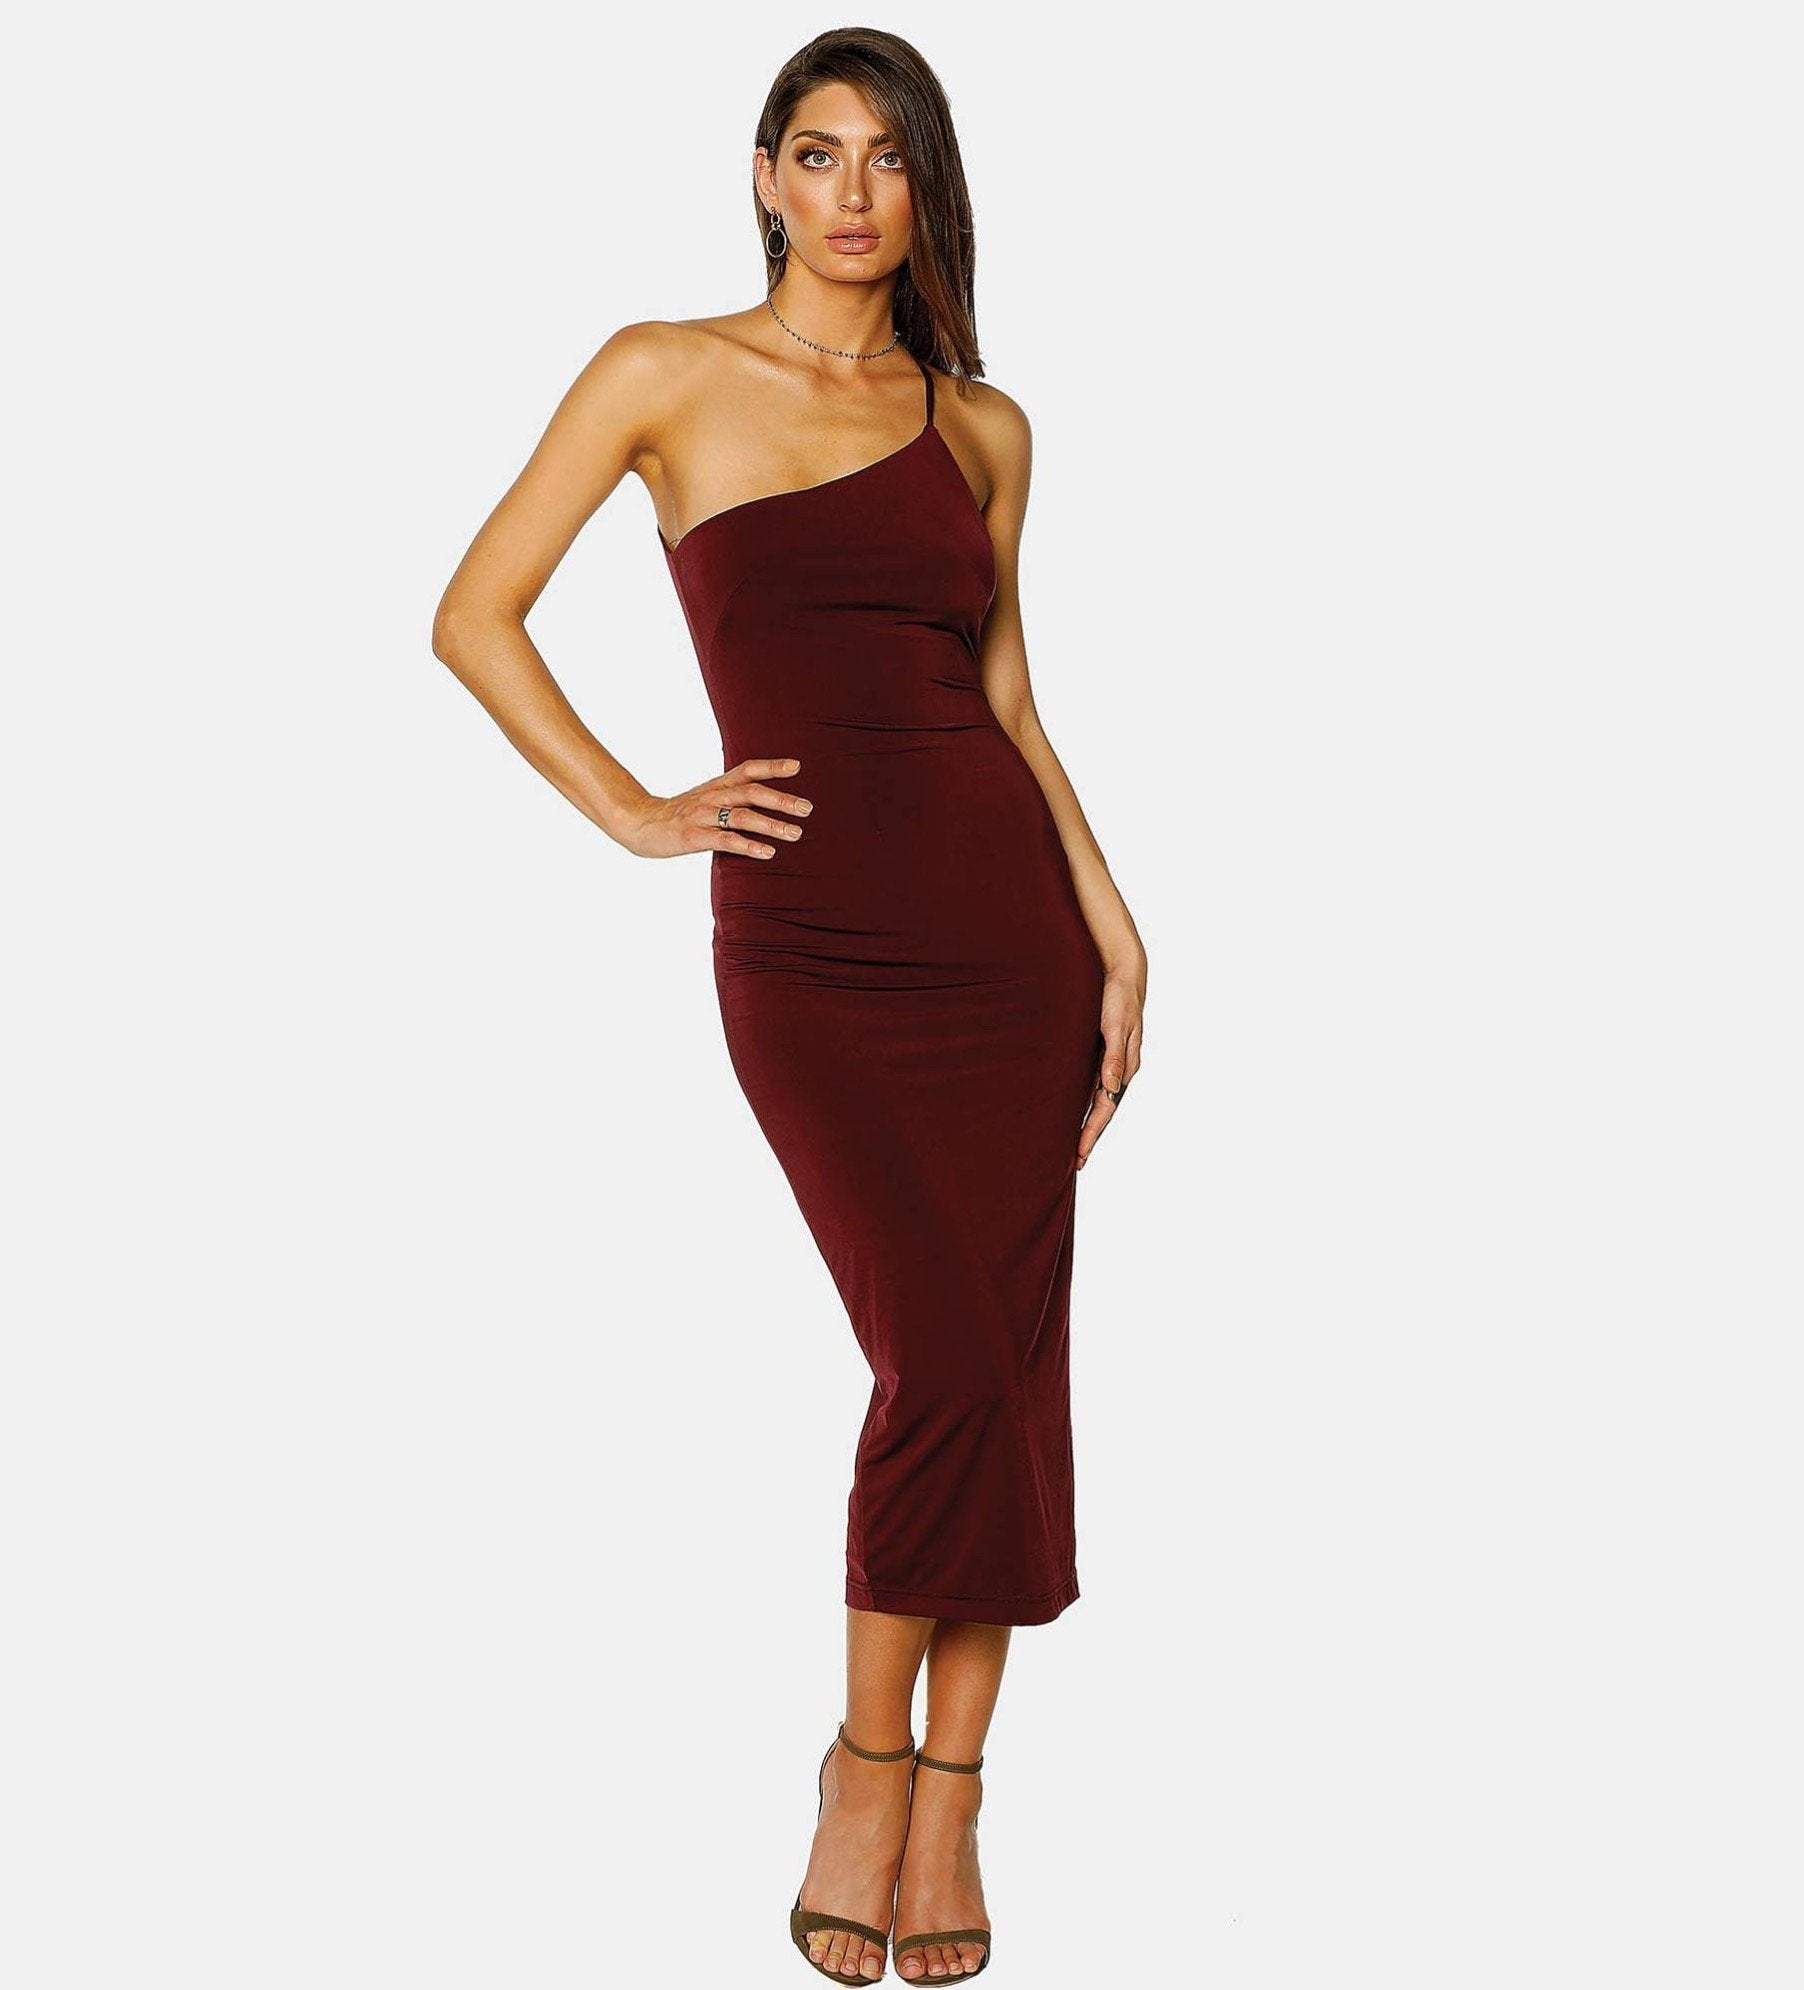 Pasduchas Bae Sexy Bodycon Midi Dress in Deep Wine - Lookbook Boutique